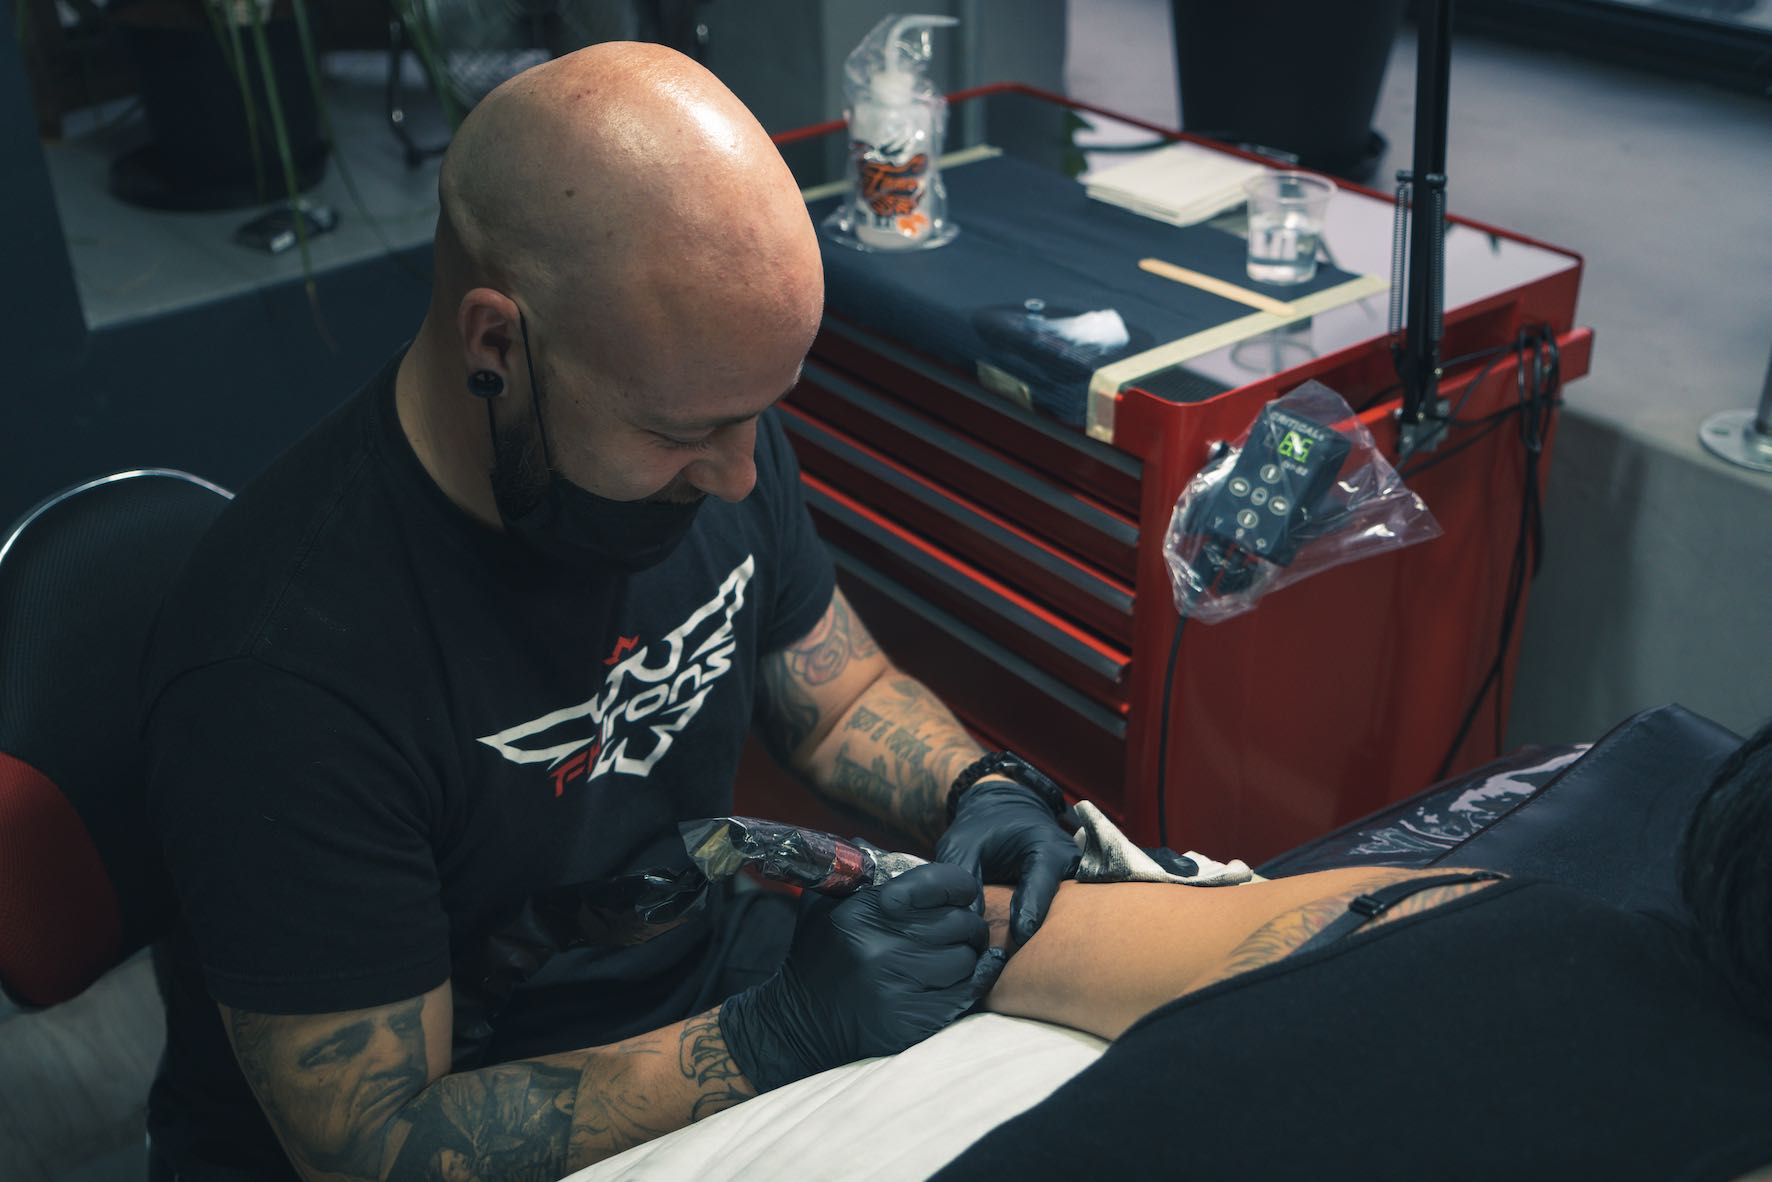 Interview with tattoo artist, Tony Barcelos